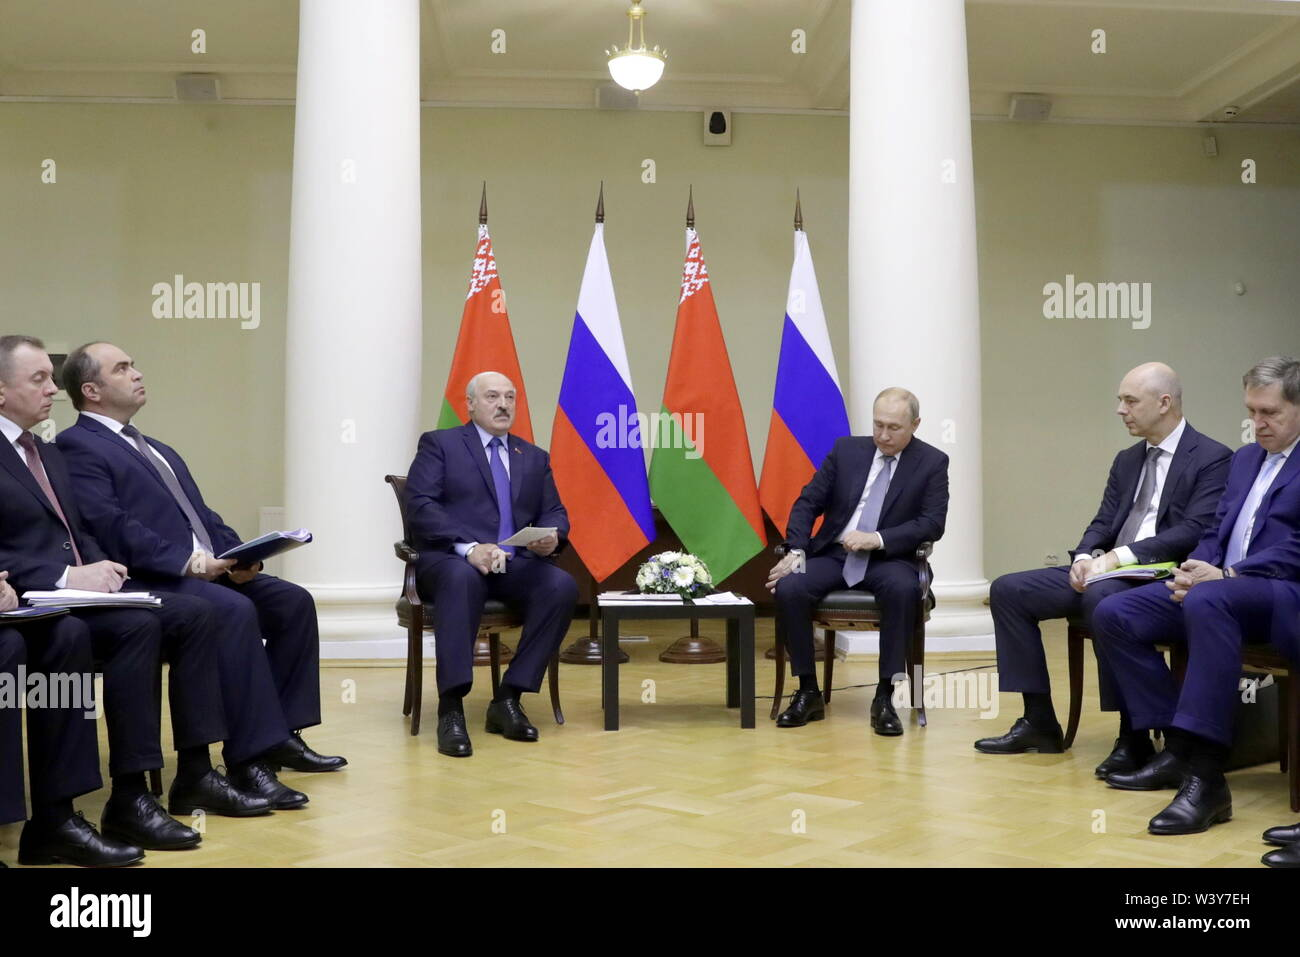 St Petersburg, Russia. 18th July, 2019. ST PETERSBURG, RUSSIA - JULY 18, 2019: Belarus' President Alexander Lukashenko and Russia's President Vladimir Putin (L-R centre) during a meeting at the Tauride Palace. Mikhail Metzel/TASS Credit: ITAR-TASS News Agency/Alamy Live News - Stock Image